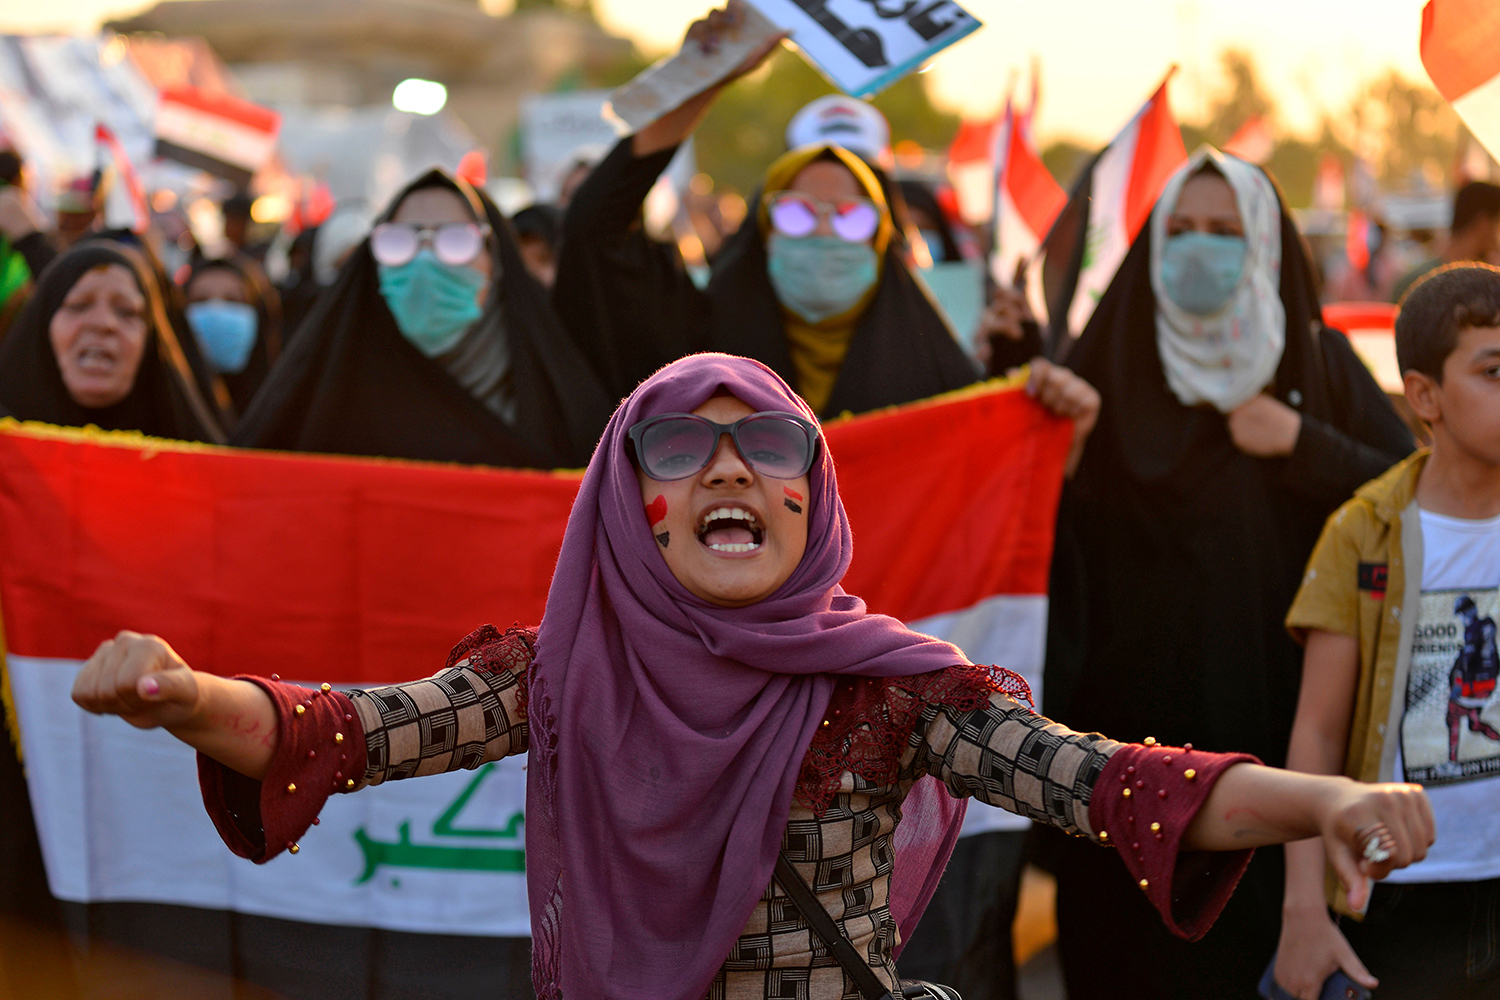 IRAQ | Iraqi women chant slogans and wave the national flag during protests in Najaf on Oct. 30. -/AFP via Getty Images